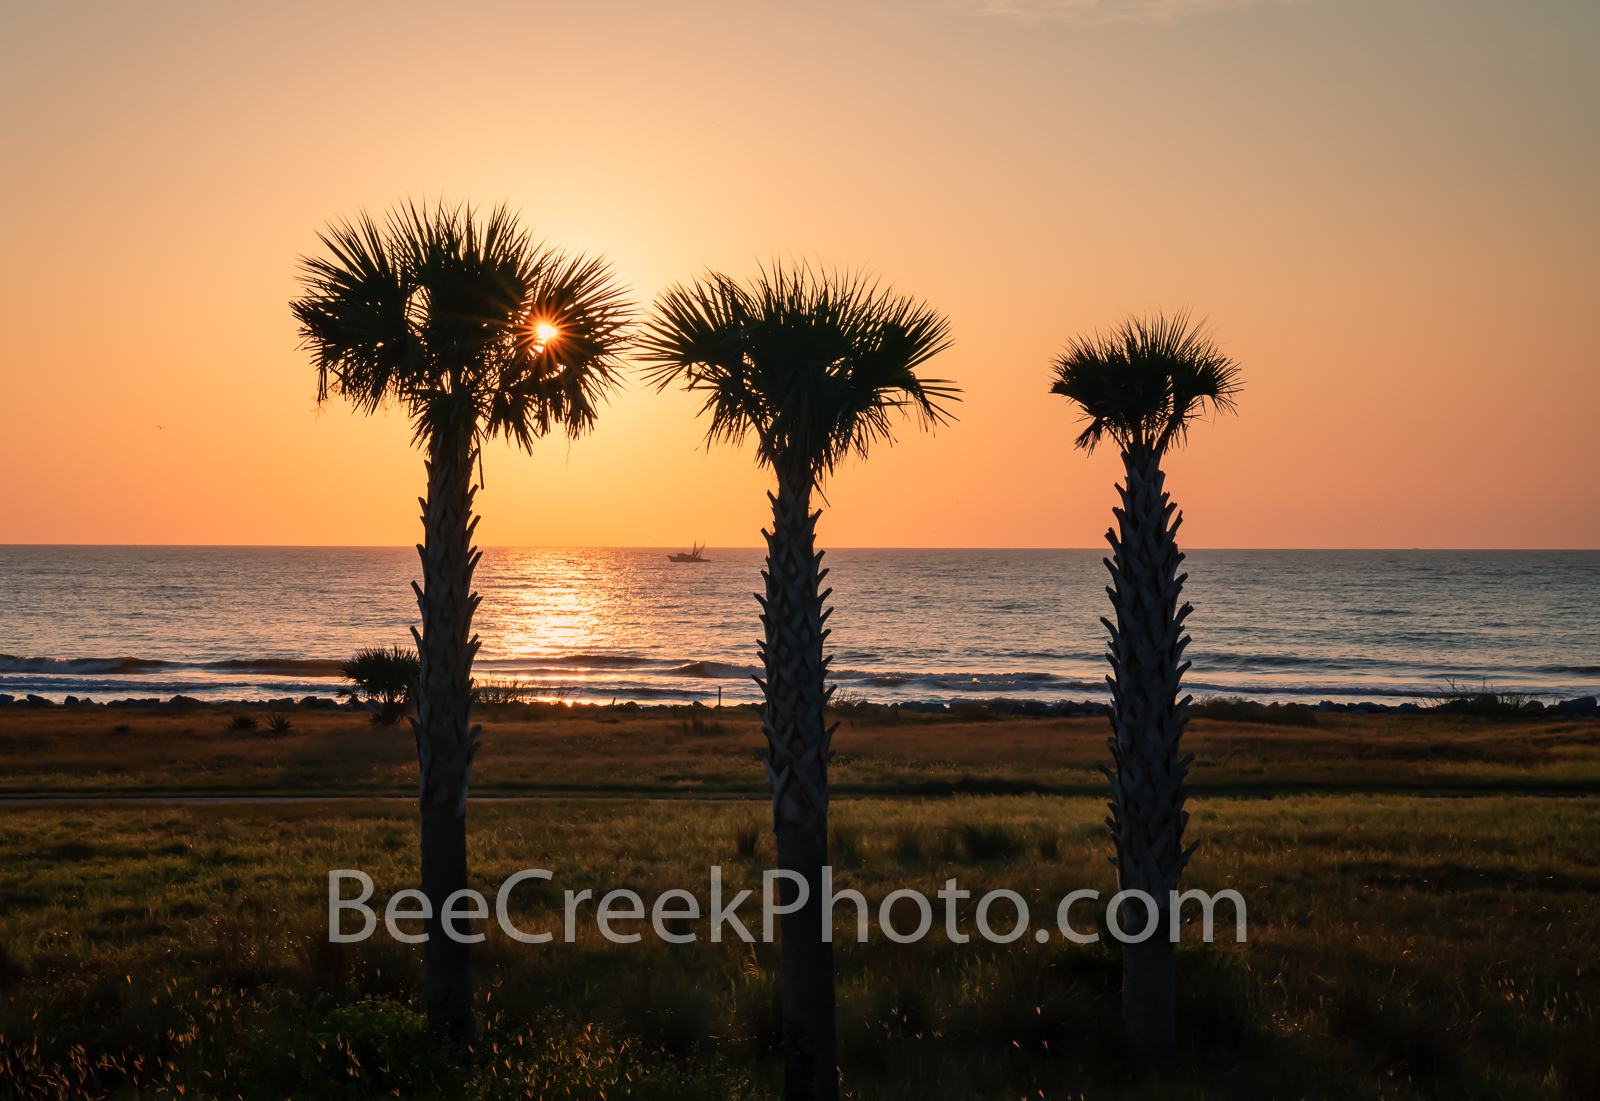 Jekyll island, palm trees, palm, glow, sunrise, orange, pinks, yellows, alantic ocean, shrimper, shrimp boat, Alantic ocean, jekyll beach, ocean, Golden Isles barrier island, beaches, Georgia, souther, photo